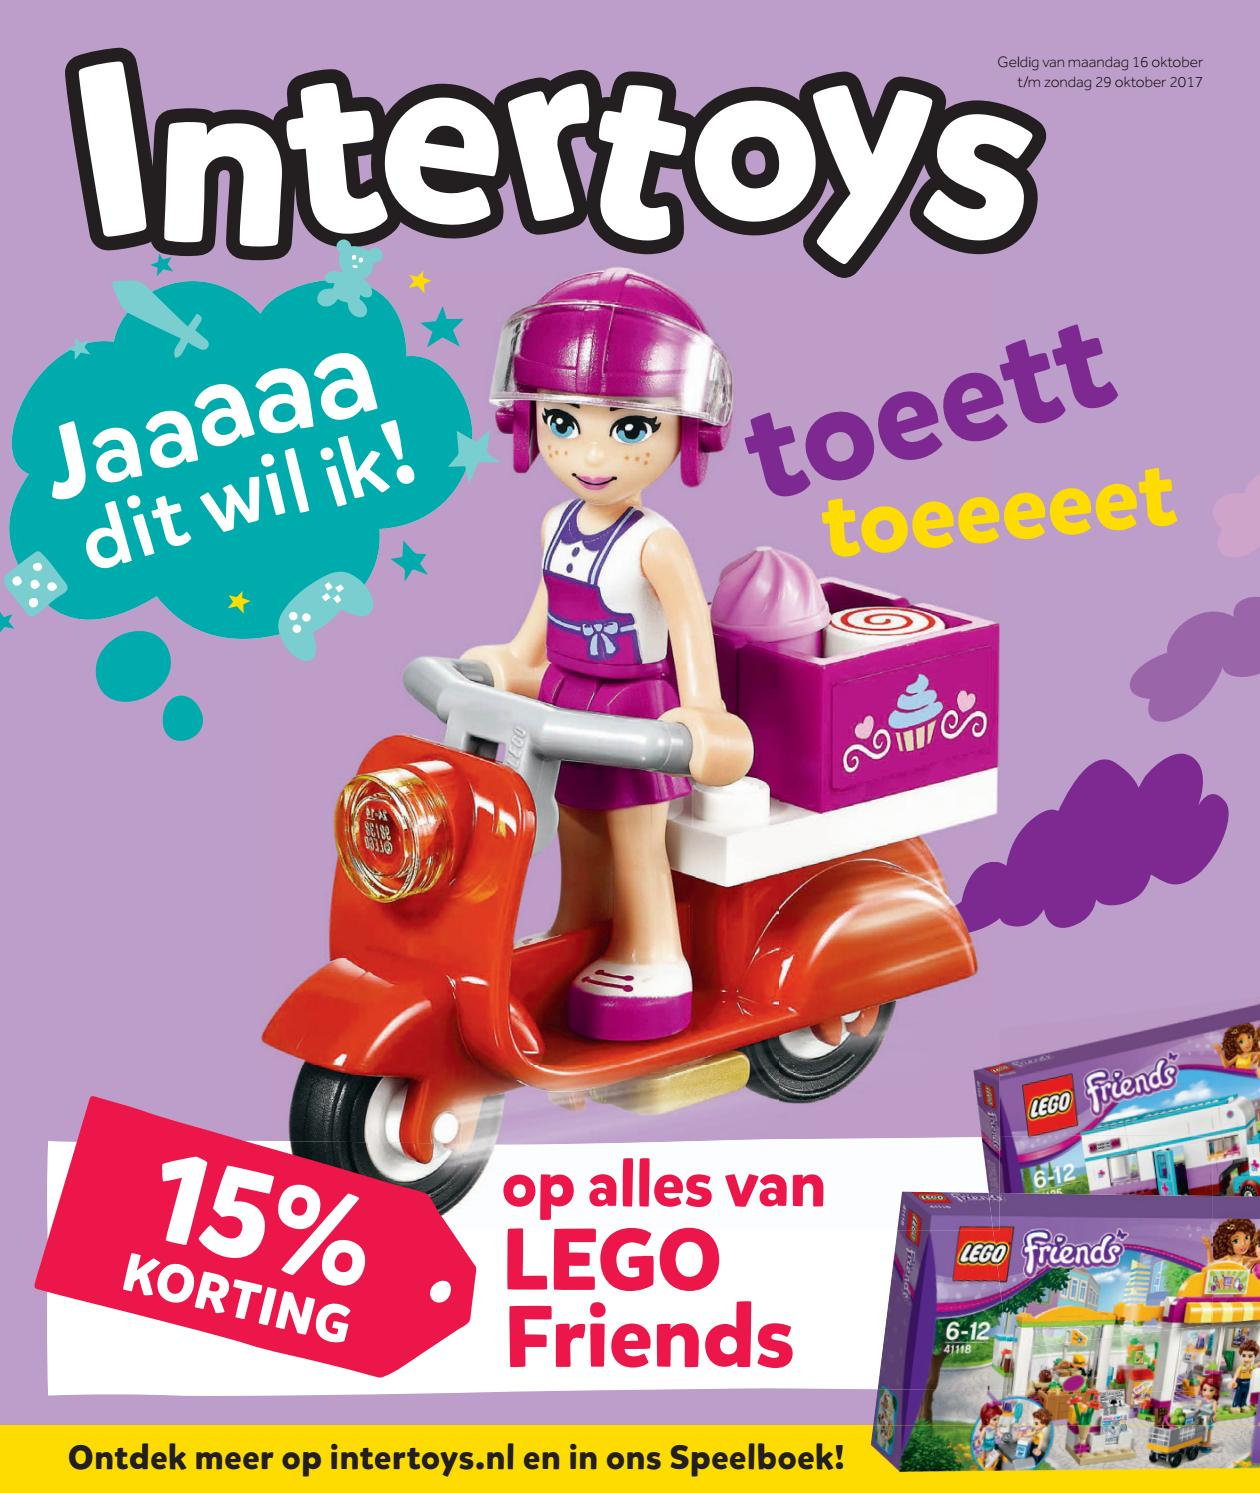 Zwembad Accessoires Intertoys Intertoys Nl Intertoys Folder Week 42 2017 By Publisher 81 Nl Issuu